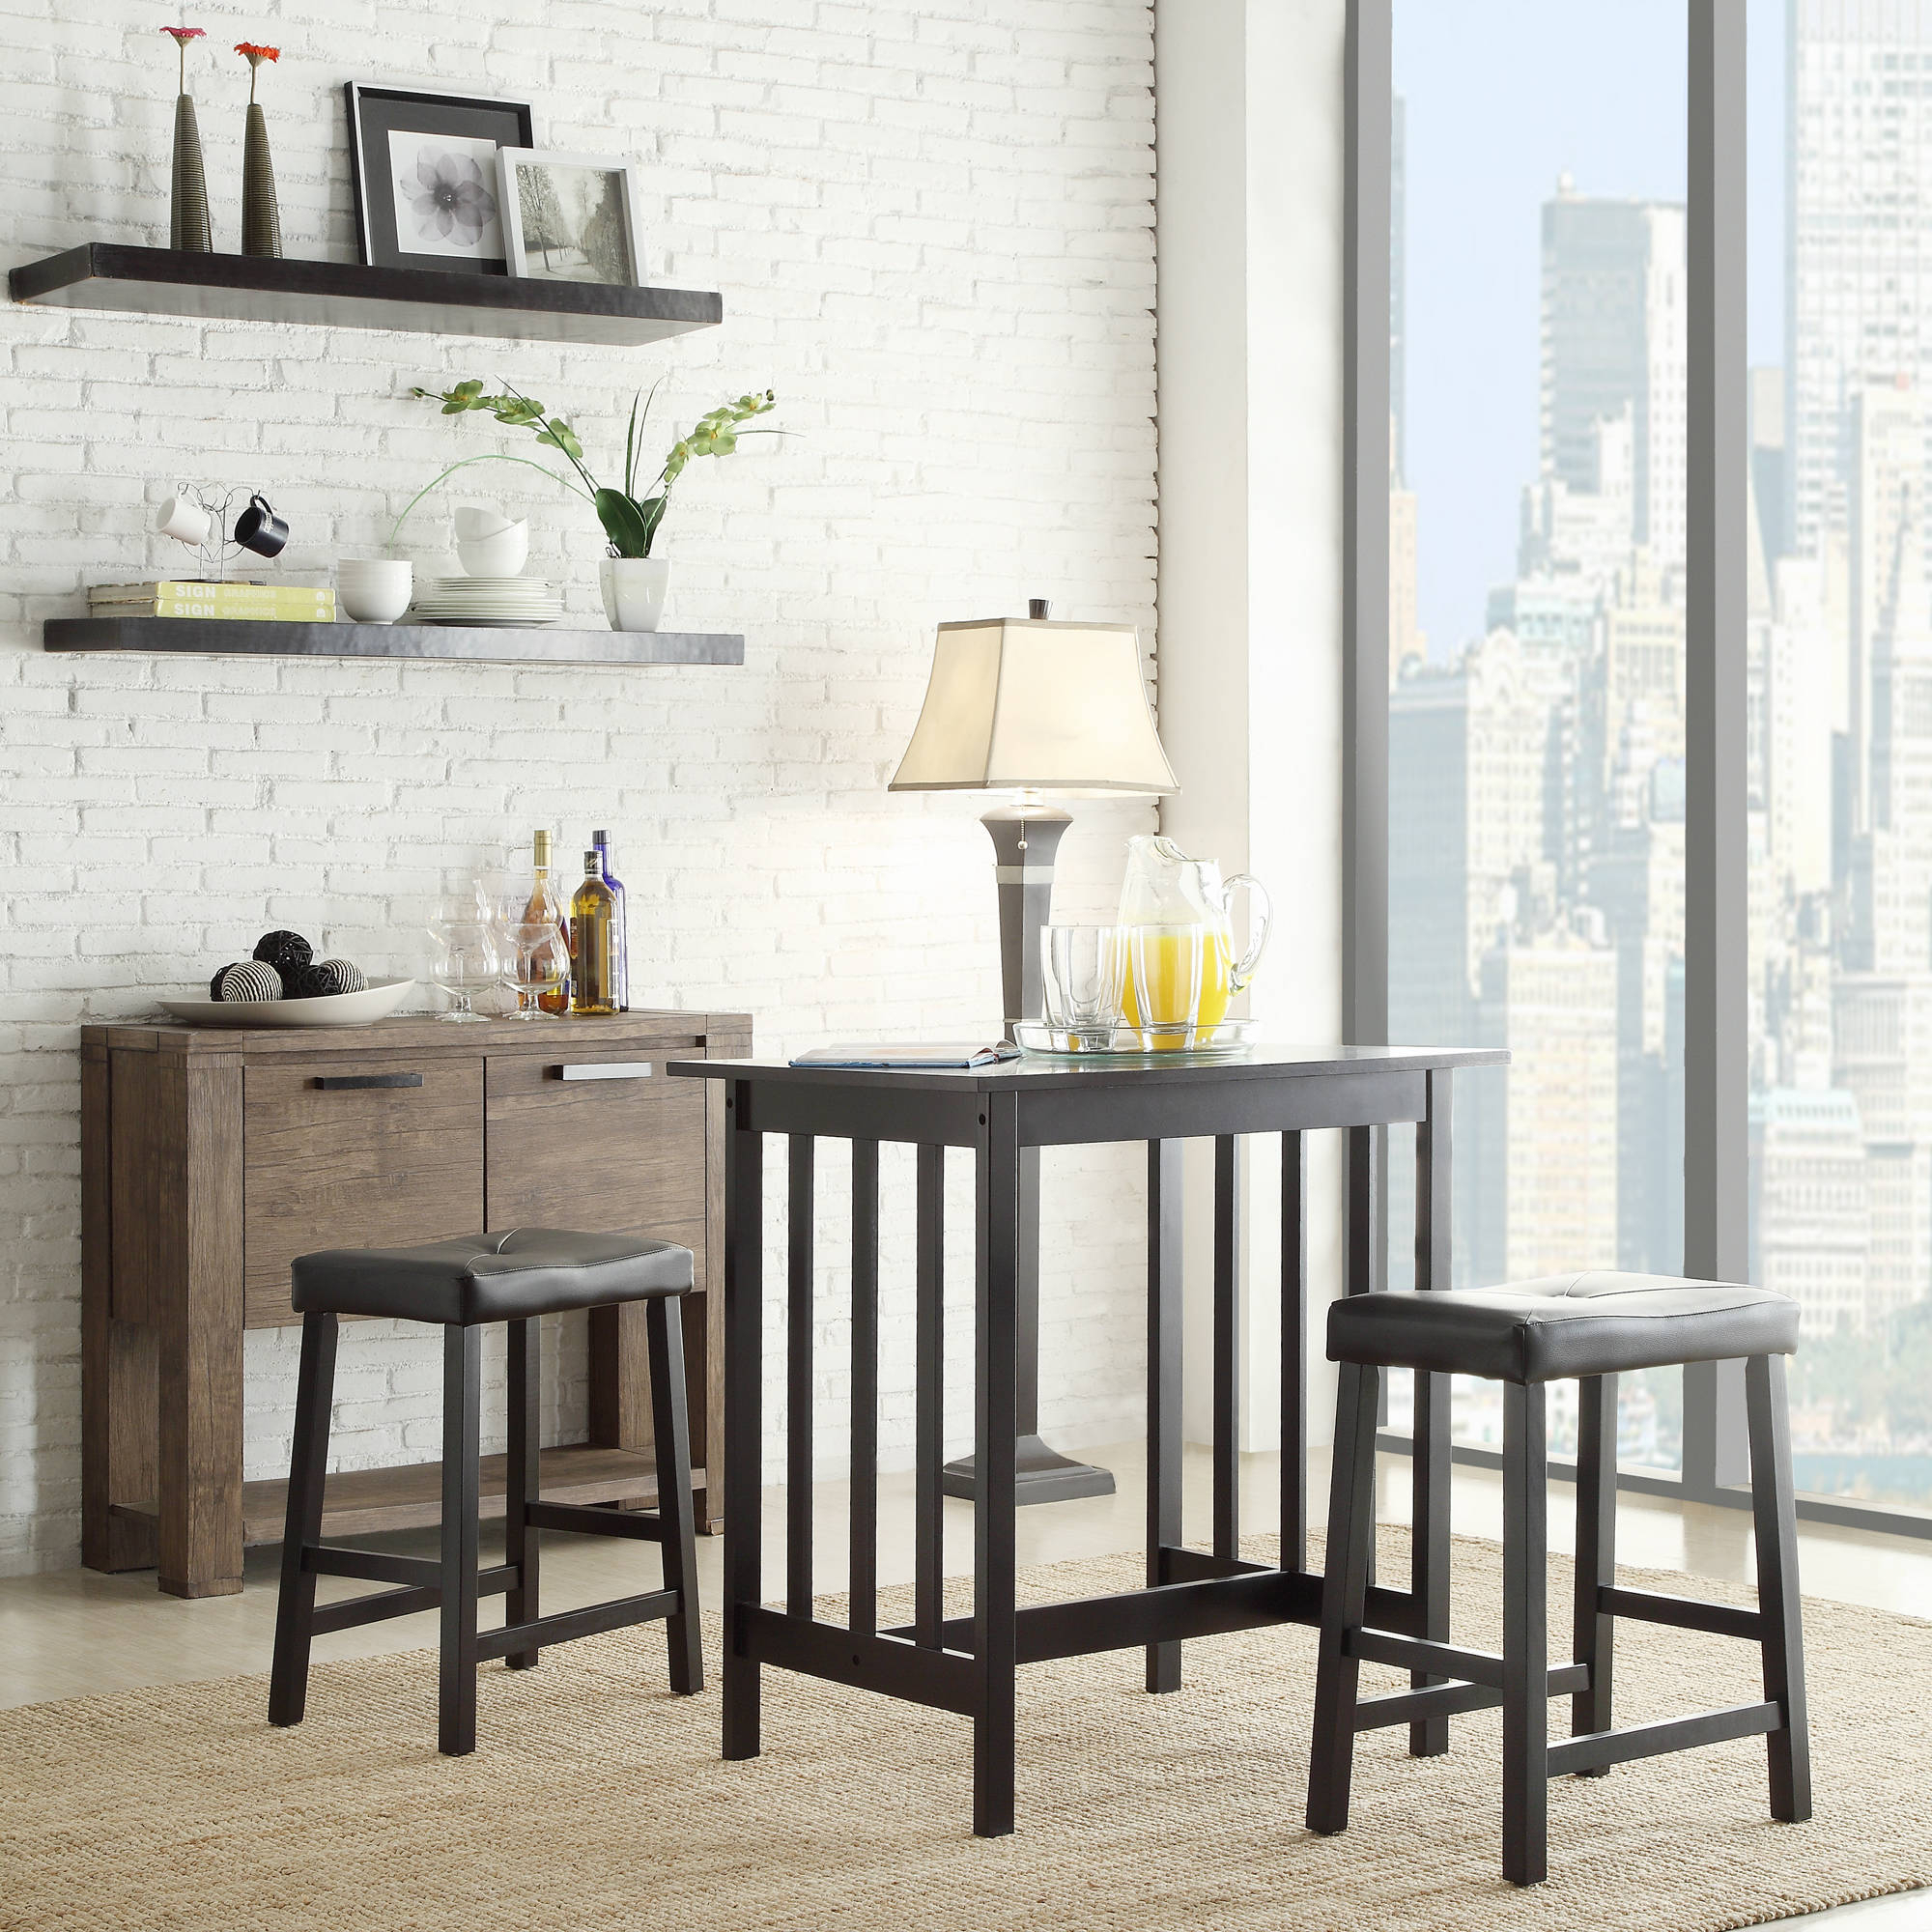 Weston Home Scottsdale 3 Piece Dining Set, Multiple Colors With Regard To Most Recently Released 3 Piece Breakfast Dining Sets (View 16 of 20)